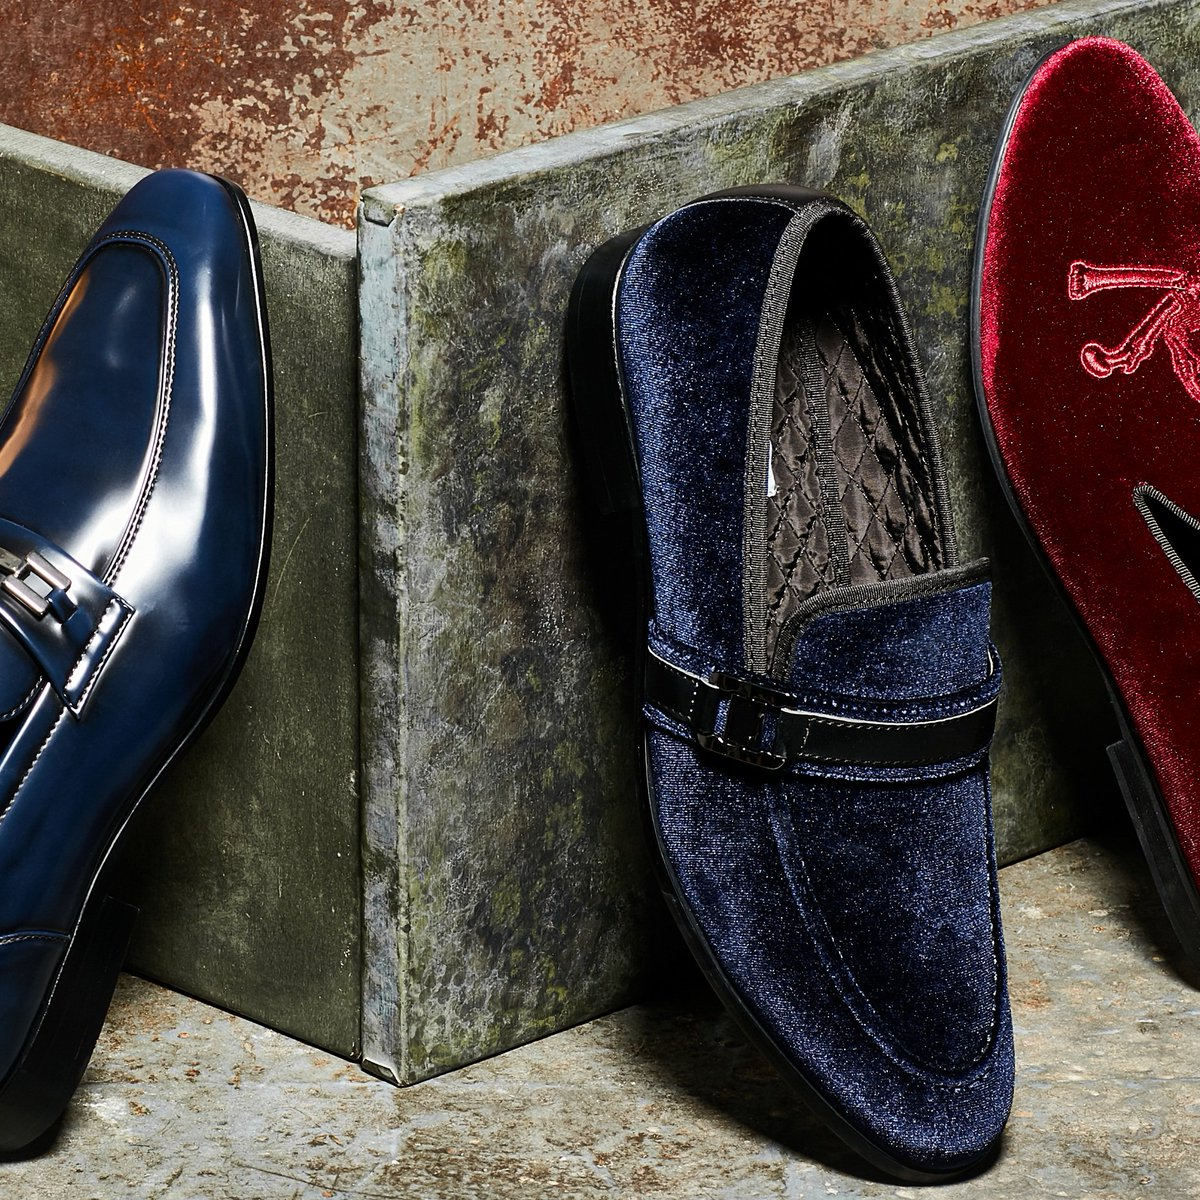 4495e1271fc Introducing you Steve Madden for men. Shop the MACKLIN loafer in Steve  Madden Mall Kelapa